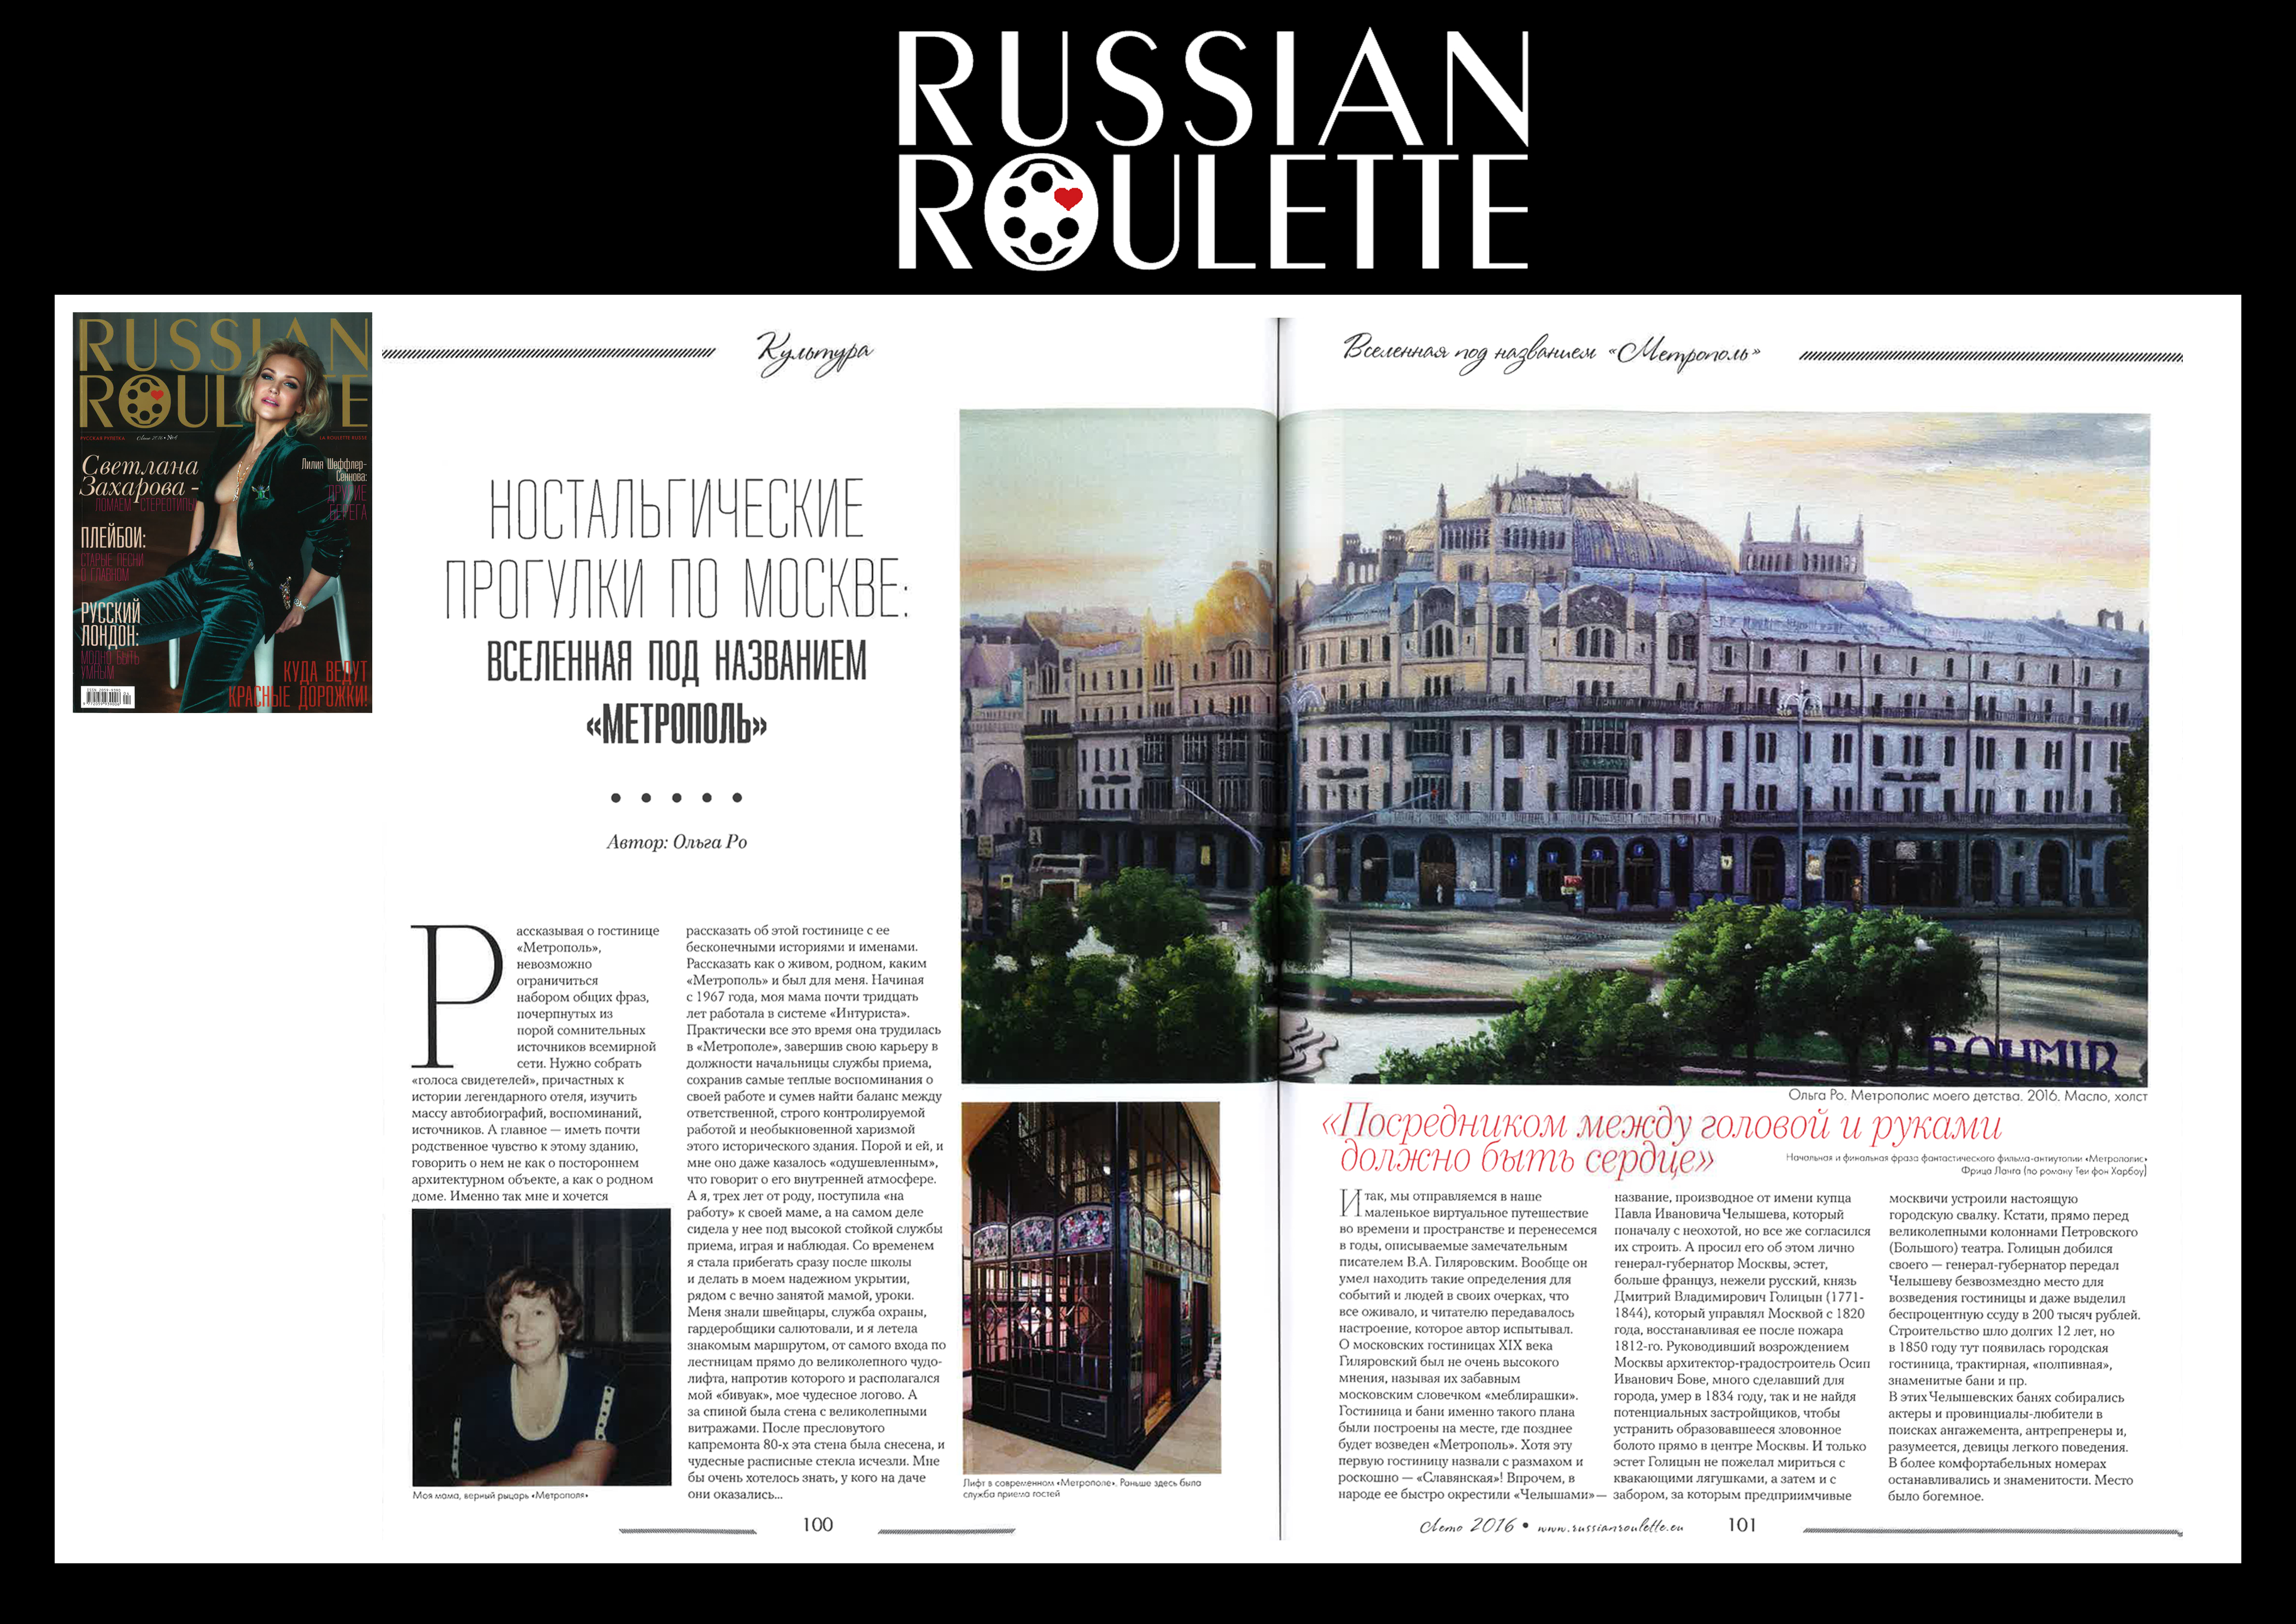 RUSSIAN ROULETTE 2016 JULY P7